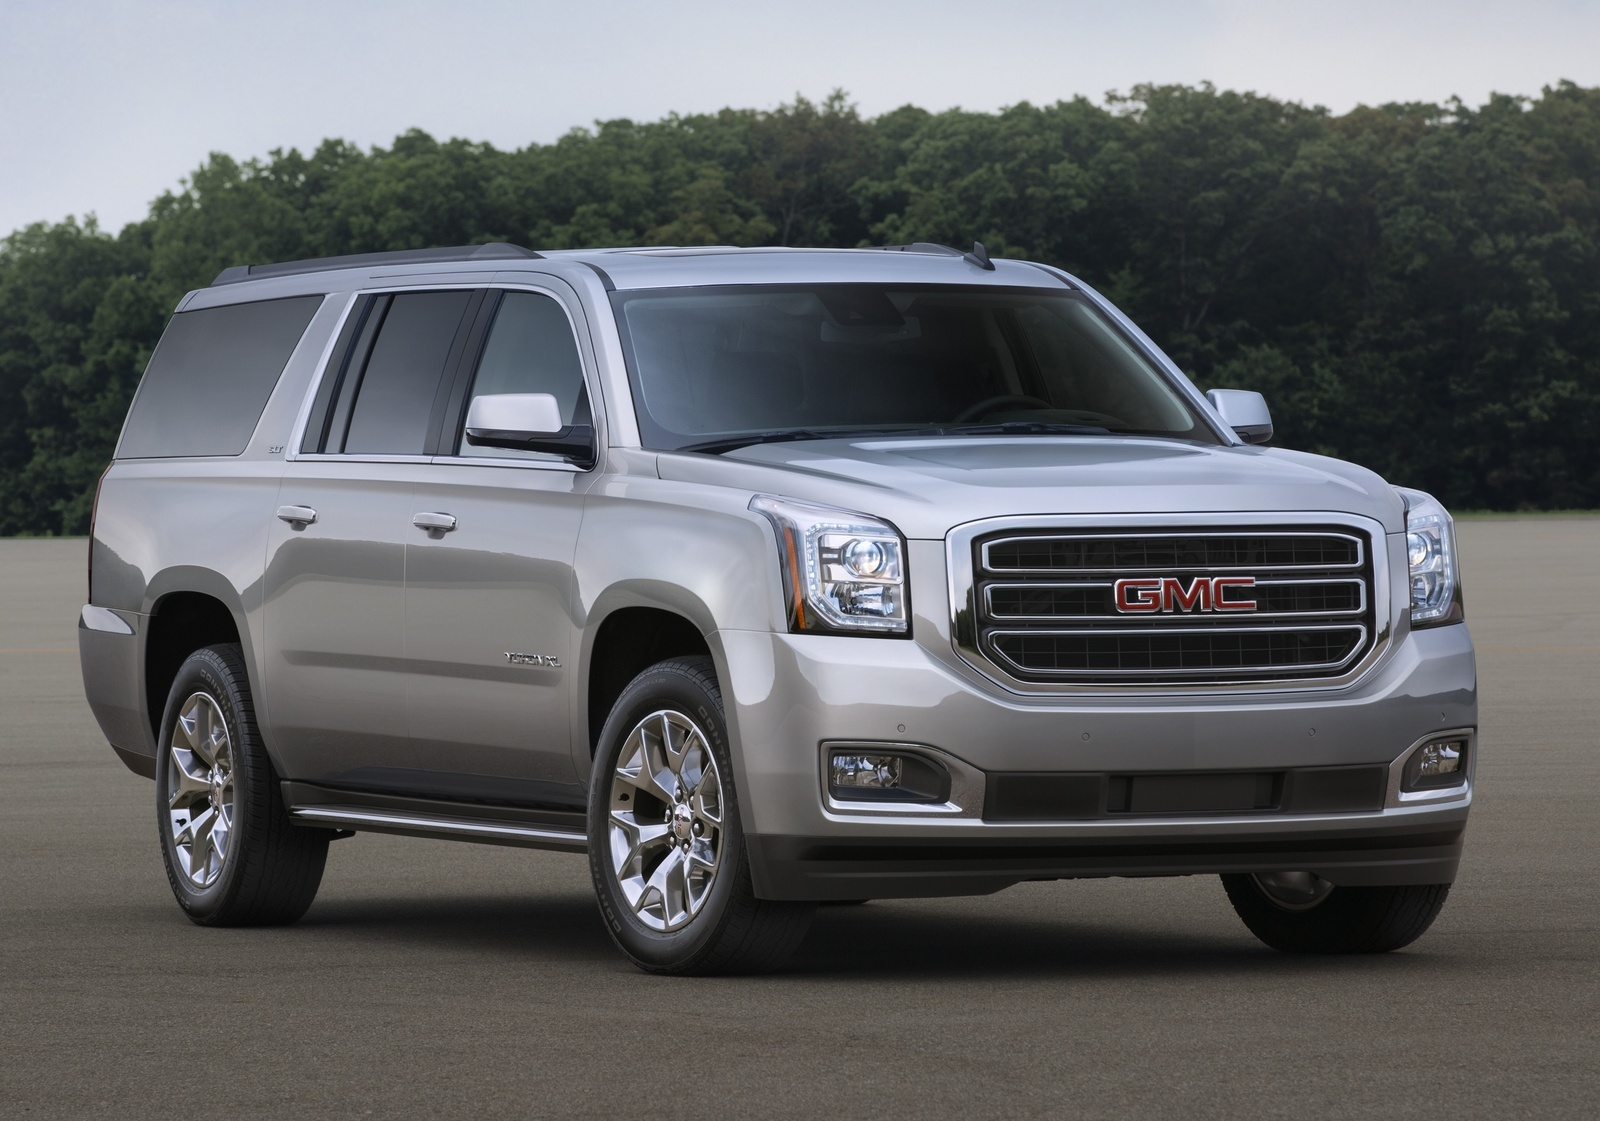 2015 gmc yukon xl overview cargurus. Black Bedroom Furniture Sets. Home Design Ideas